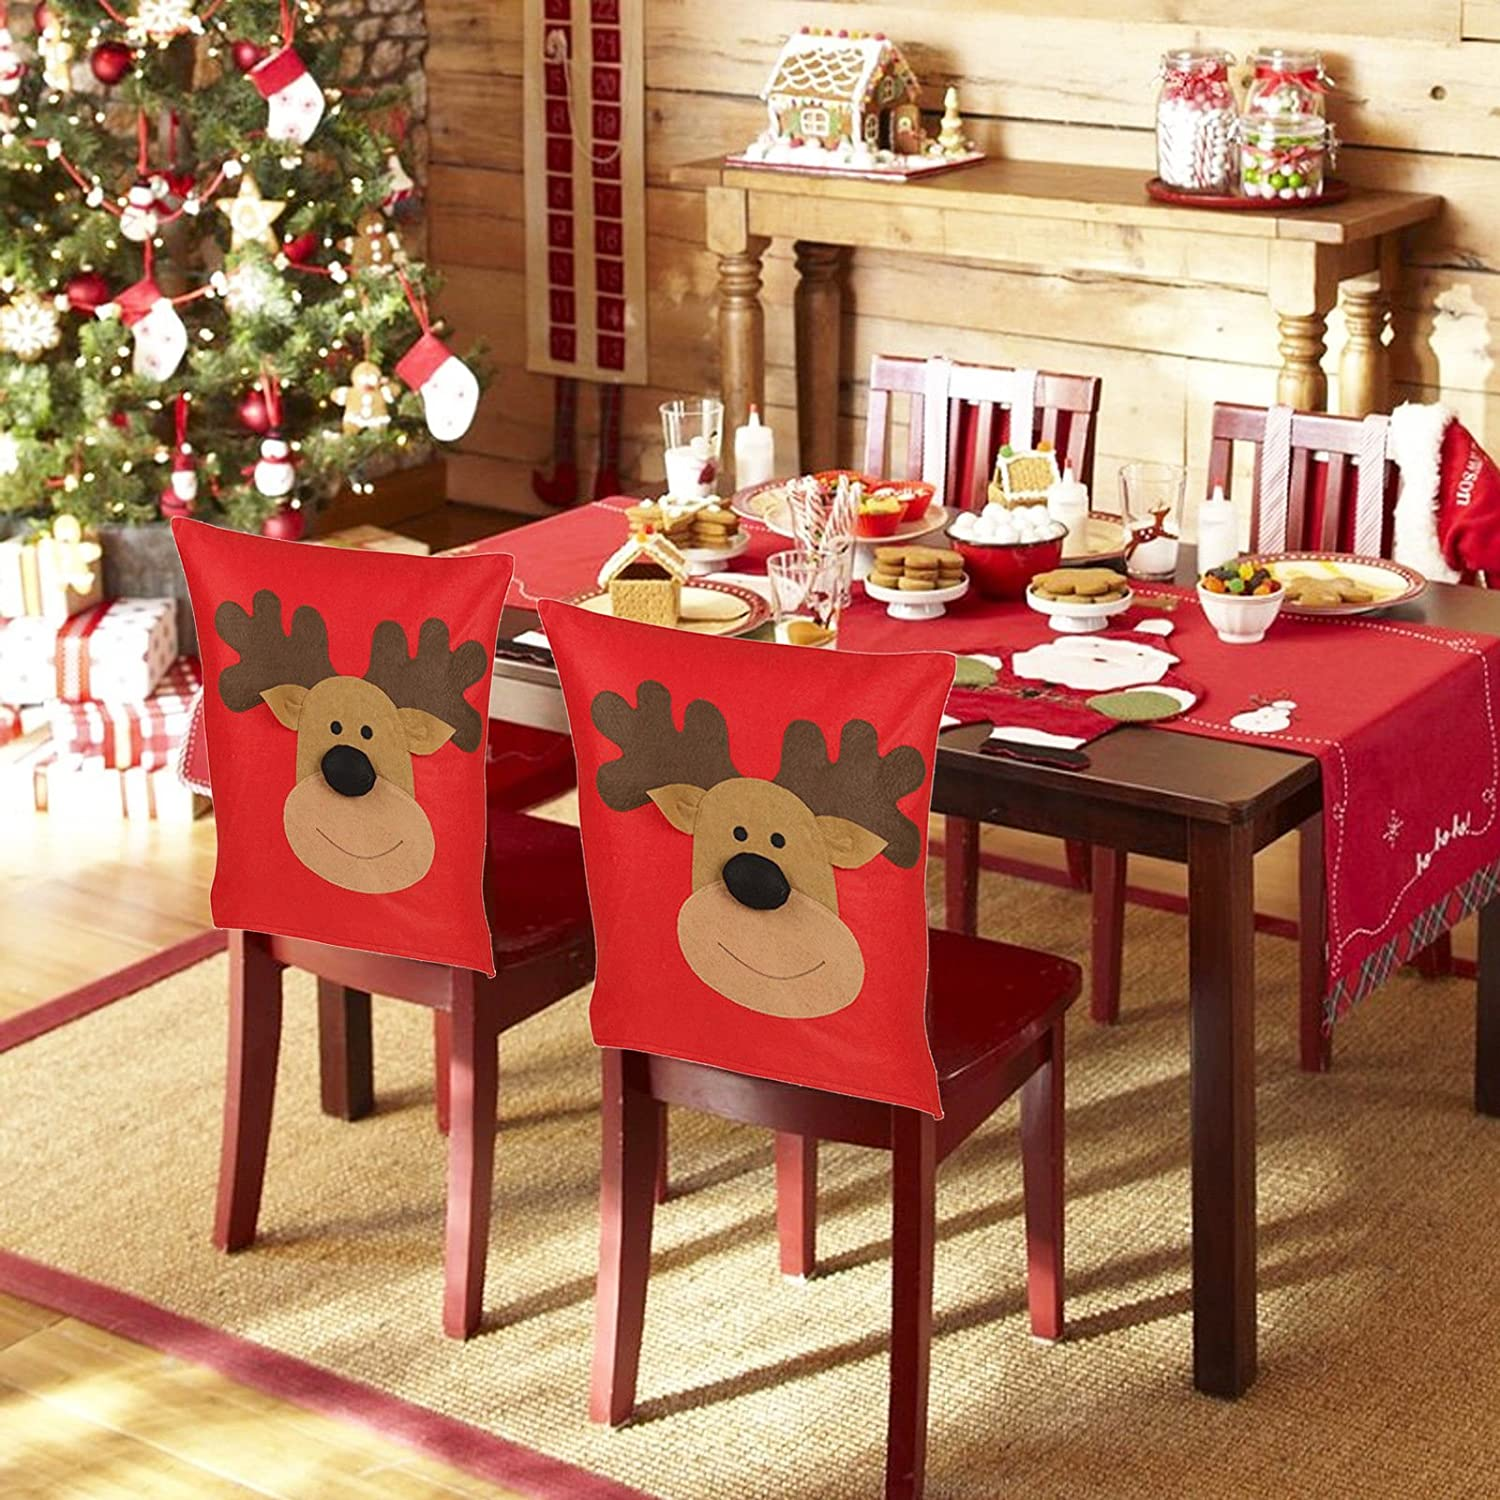 4x Reindeer Christmas Chair Cover EASYGIFT